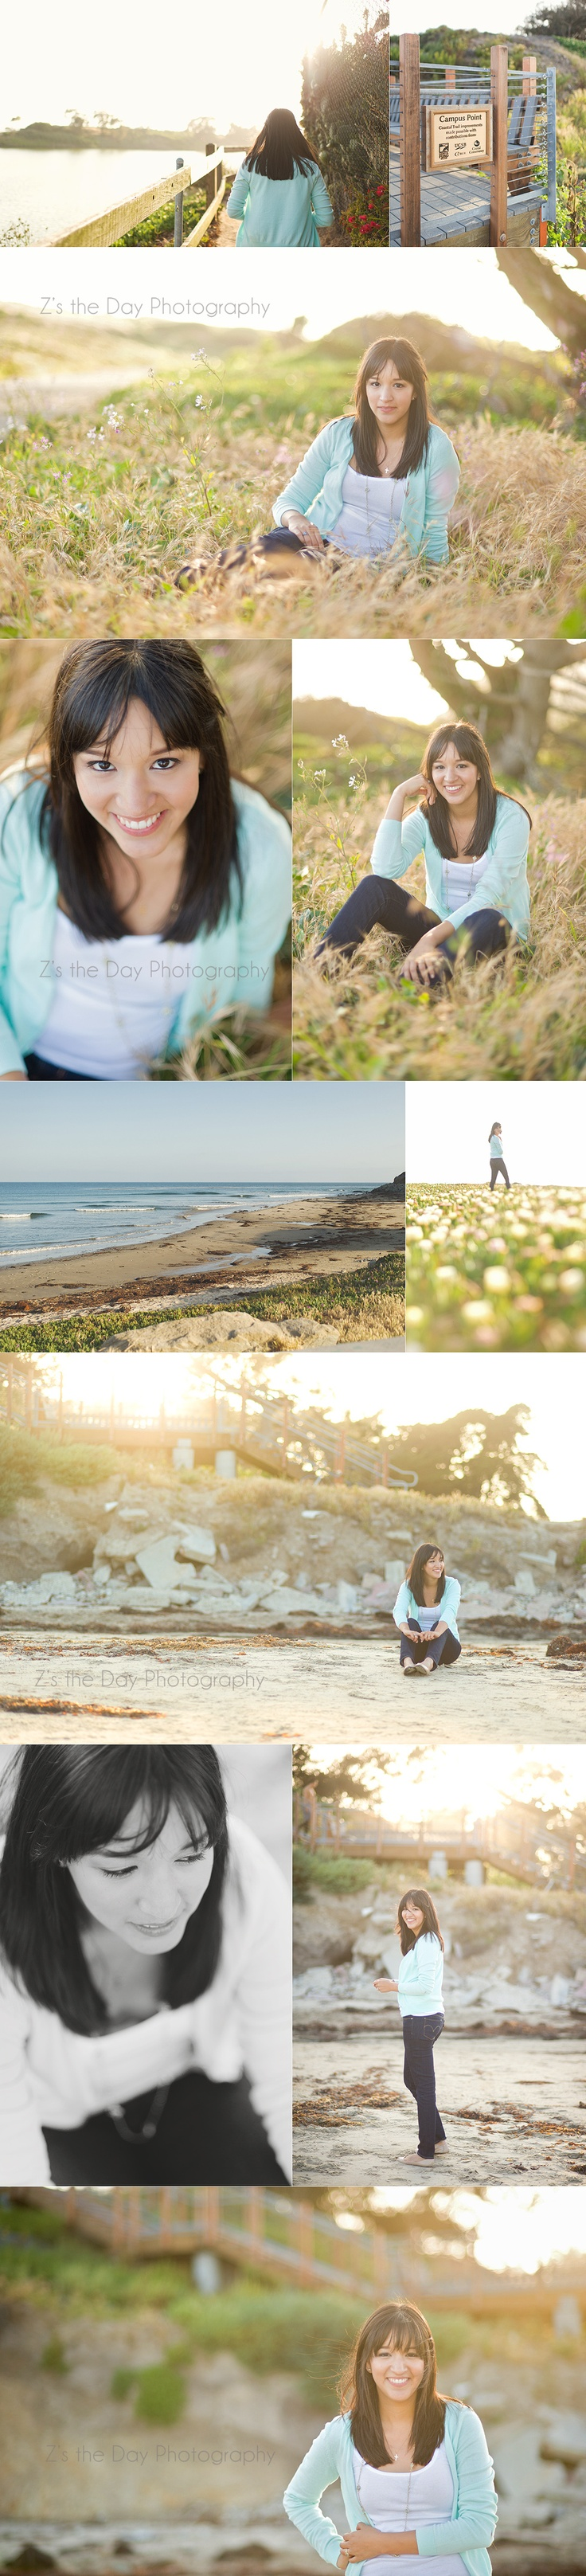 72 best UCSB images on Pinterest